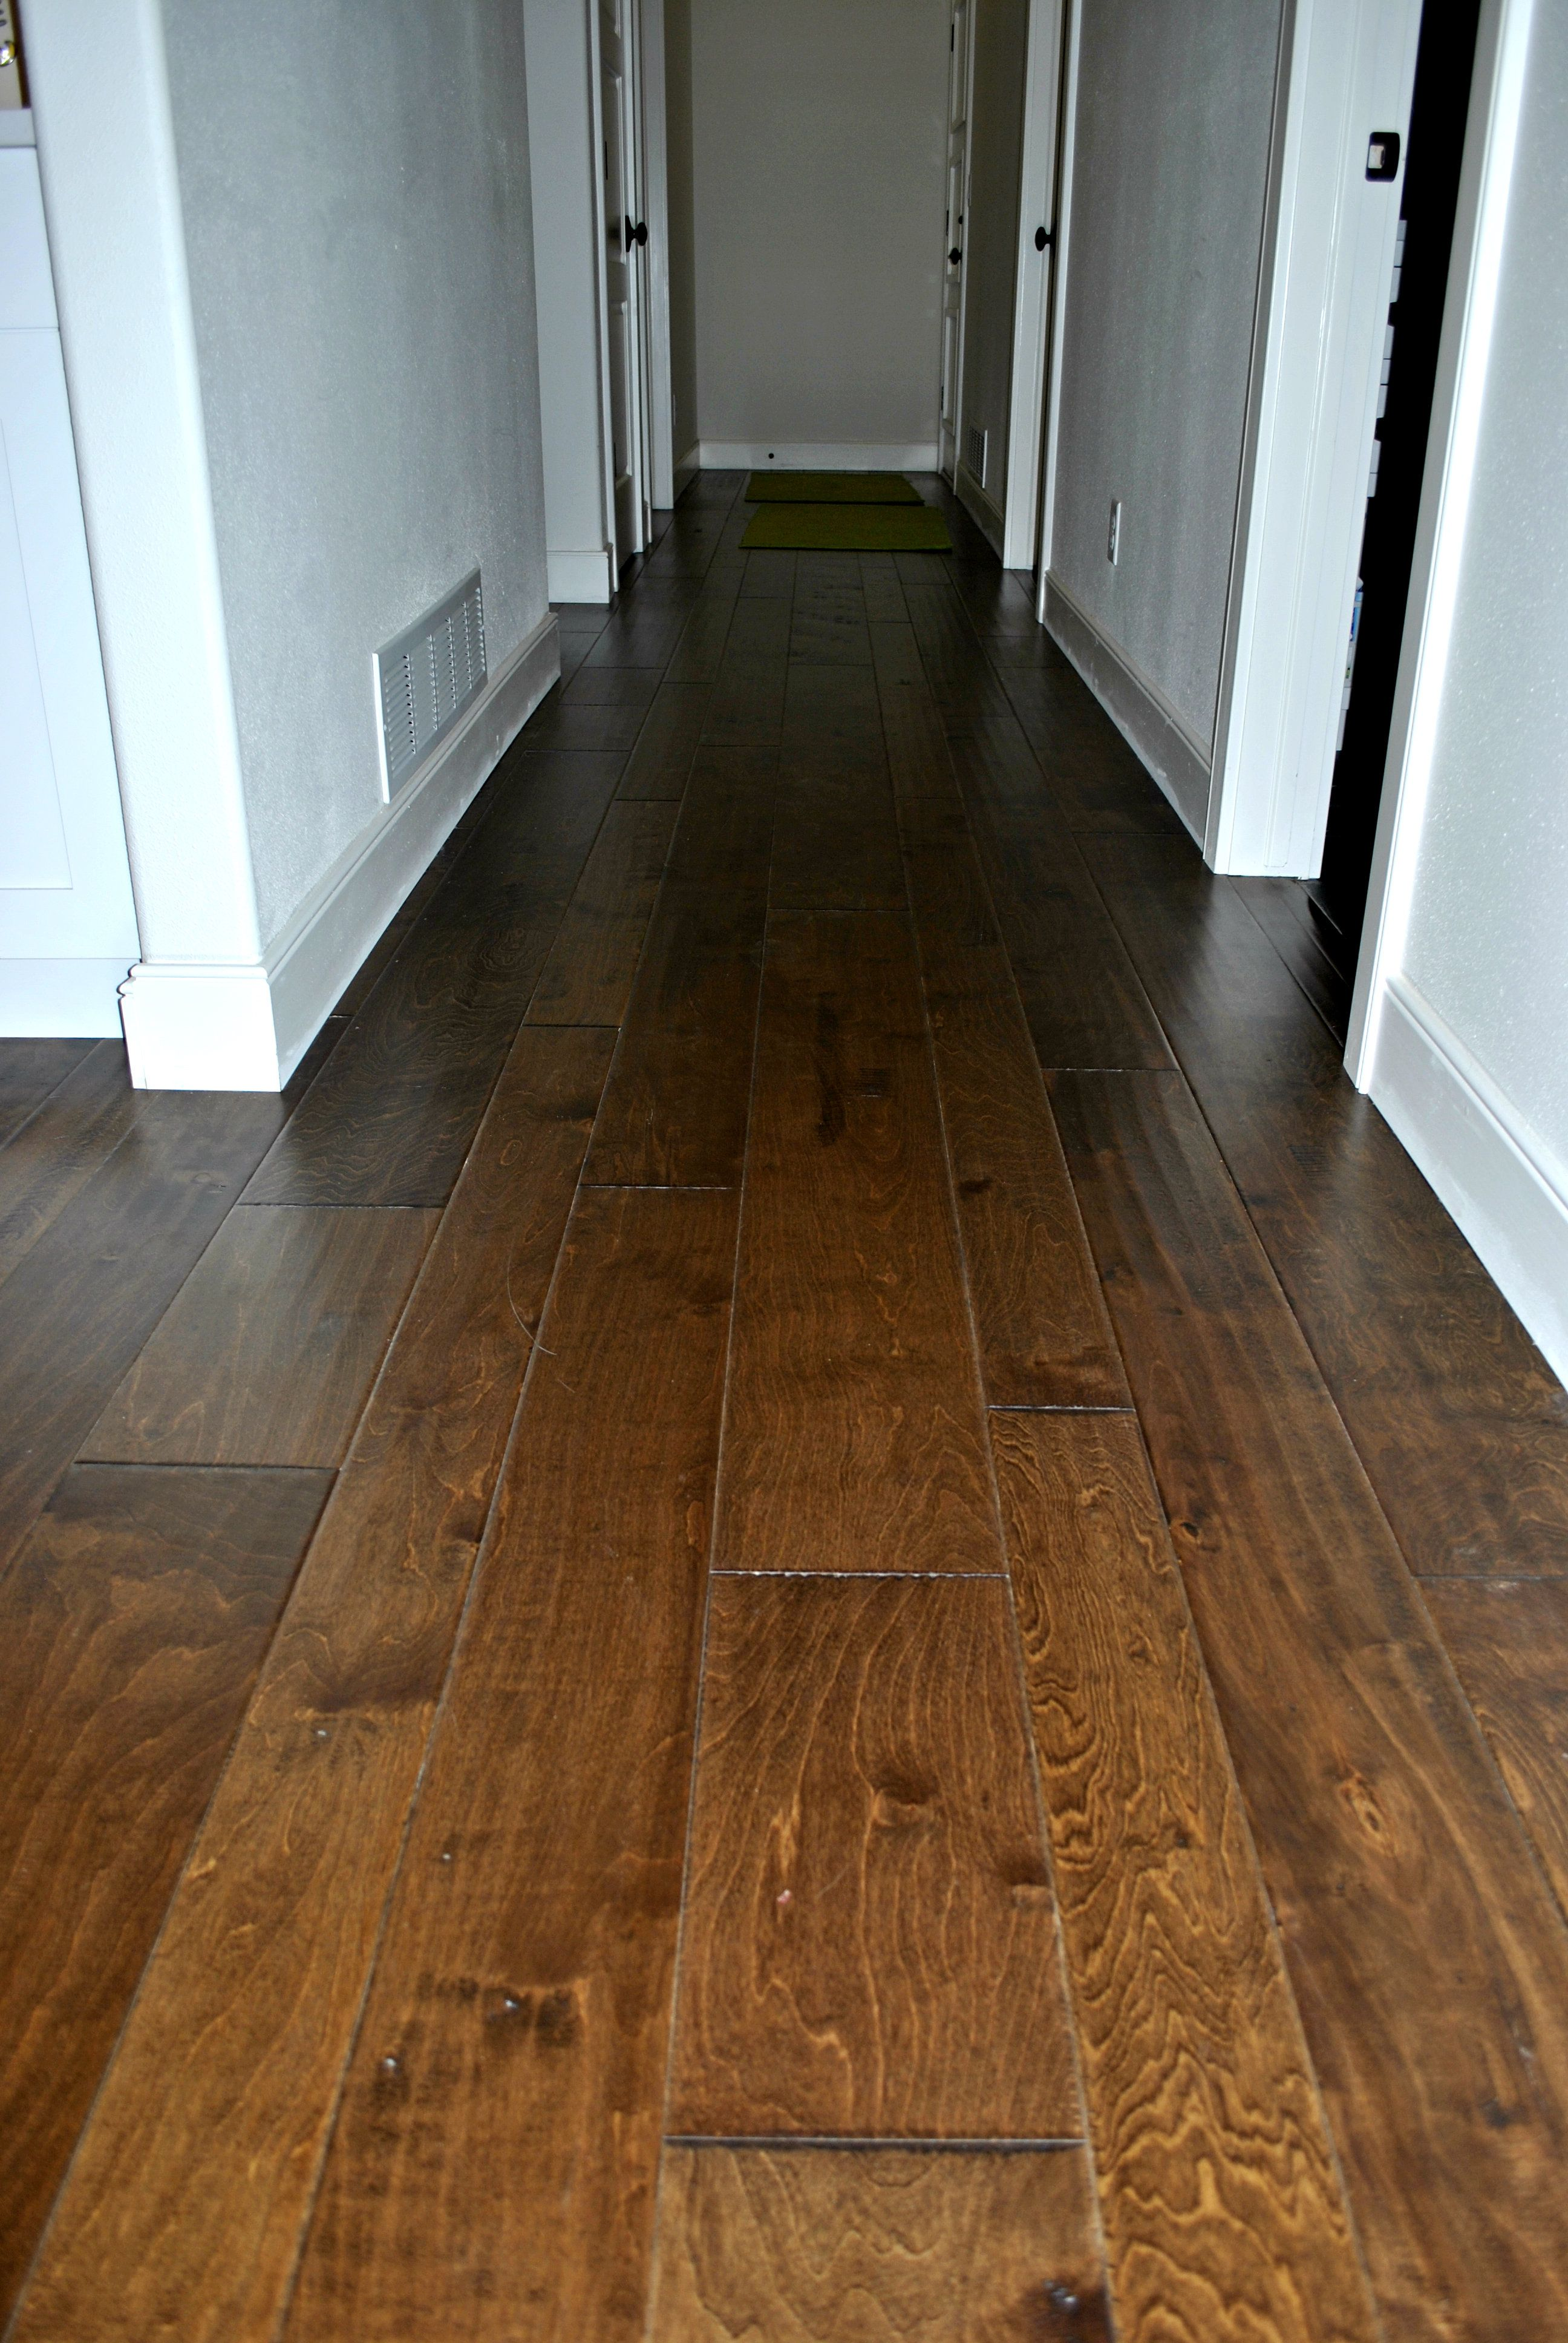 Check Out This Wood Floor It Is A Great Medium Tone With Waves Of